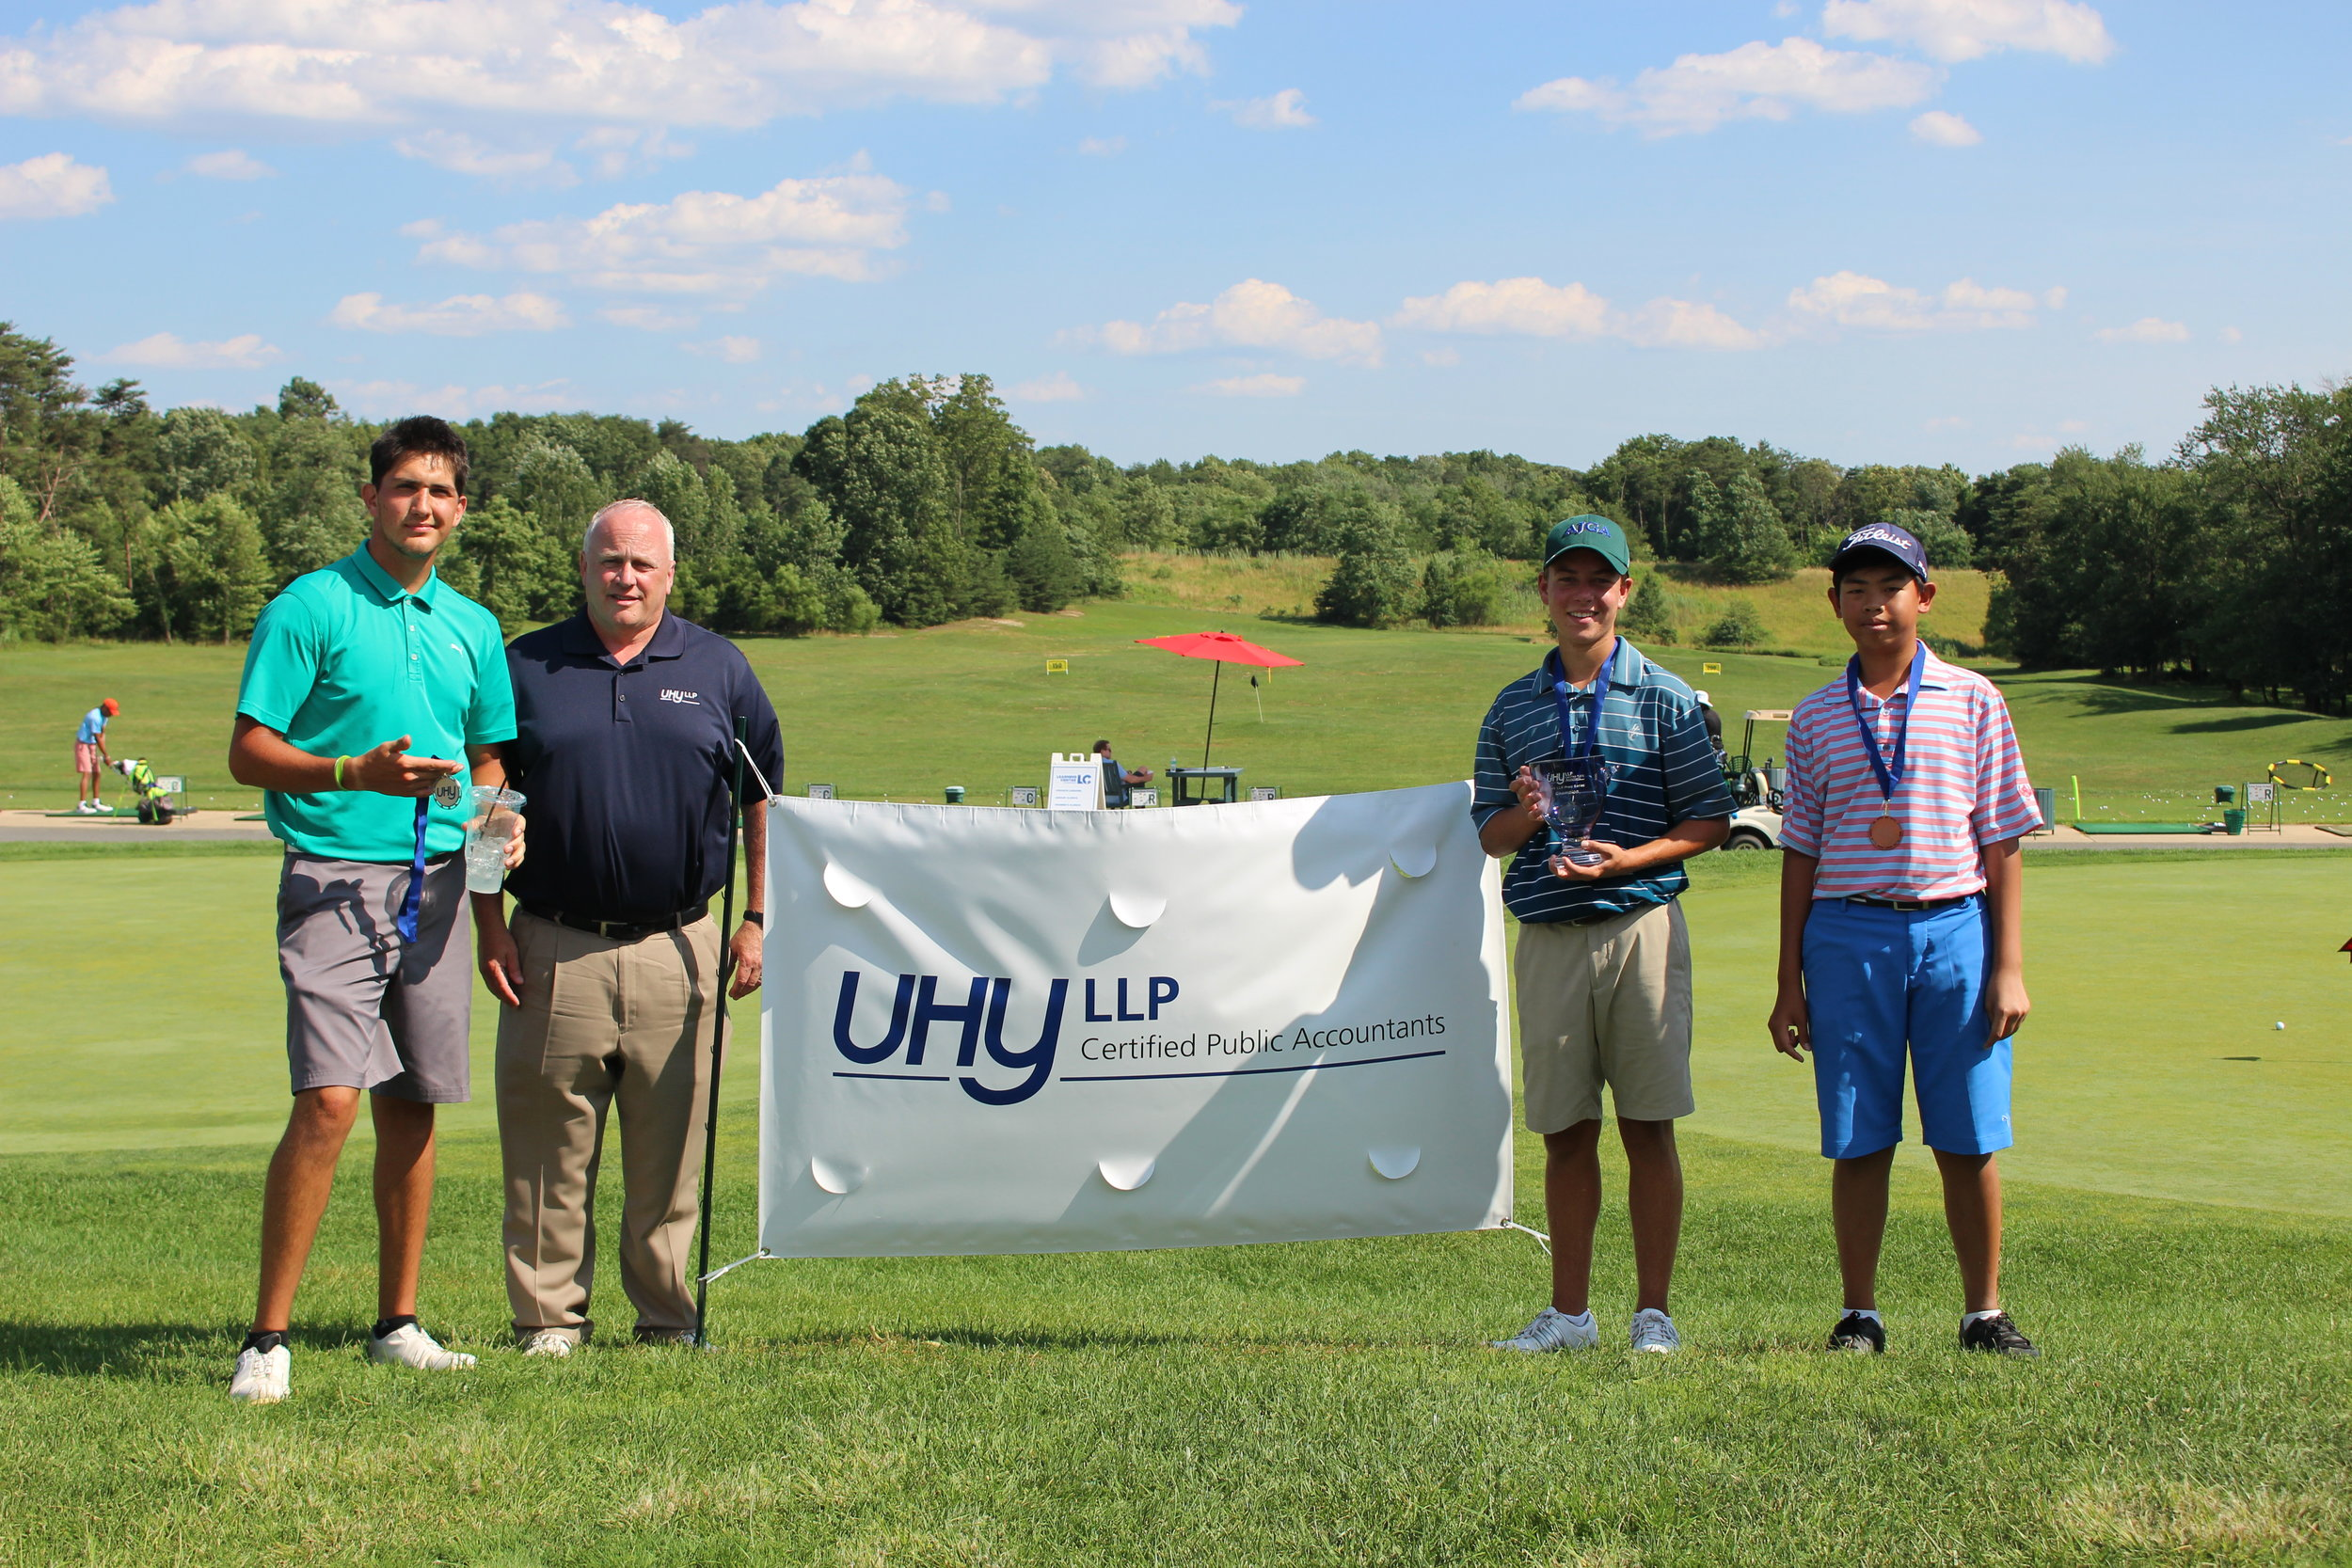 Caleb Taylor from Woodbine, MD was the boys champion (73-79-152), while William Creery from Fallston, MD was runner up and Benjamin Siriboury from Clarksville, MD finished third.